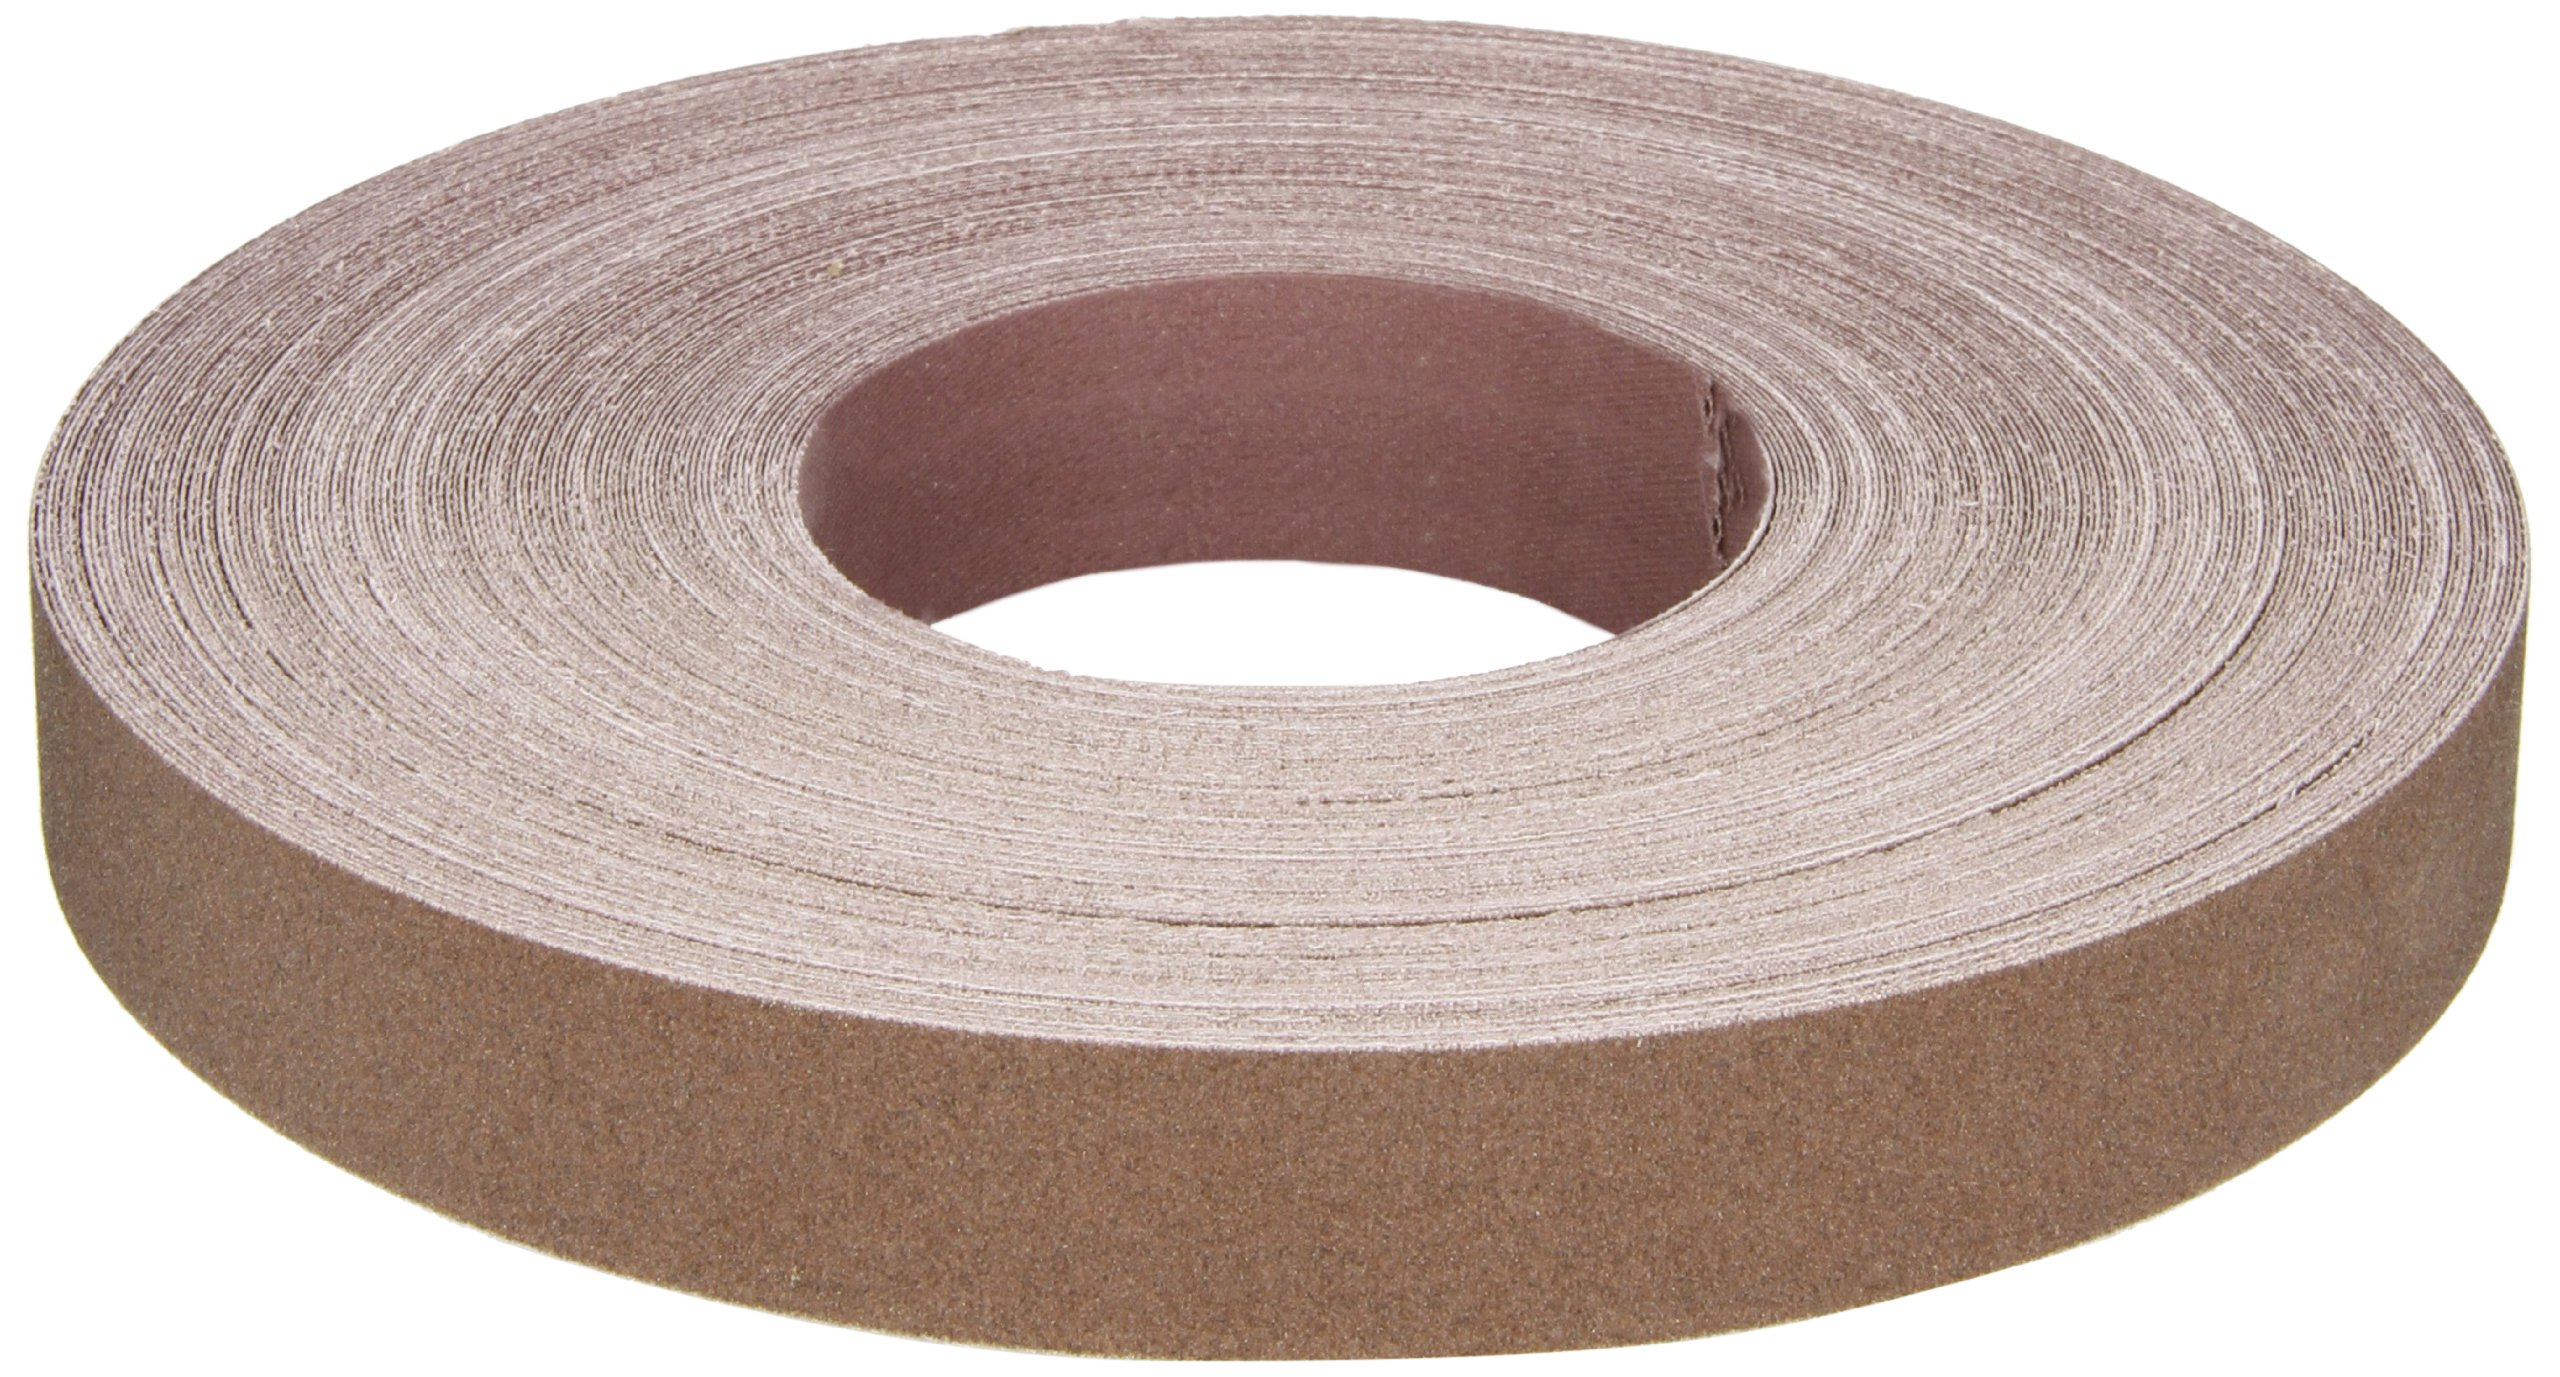 Norton K225 Metalite Abrasive Roll, Cloth Backing, Aluminum Oxide, 1'' Width x 50yd Length, Grit P150 (Pack of 5) by Norton Abrasives - St. Gobain (Image #1)